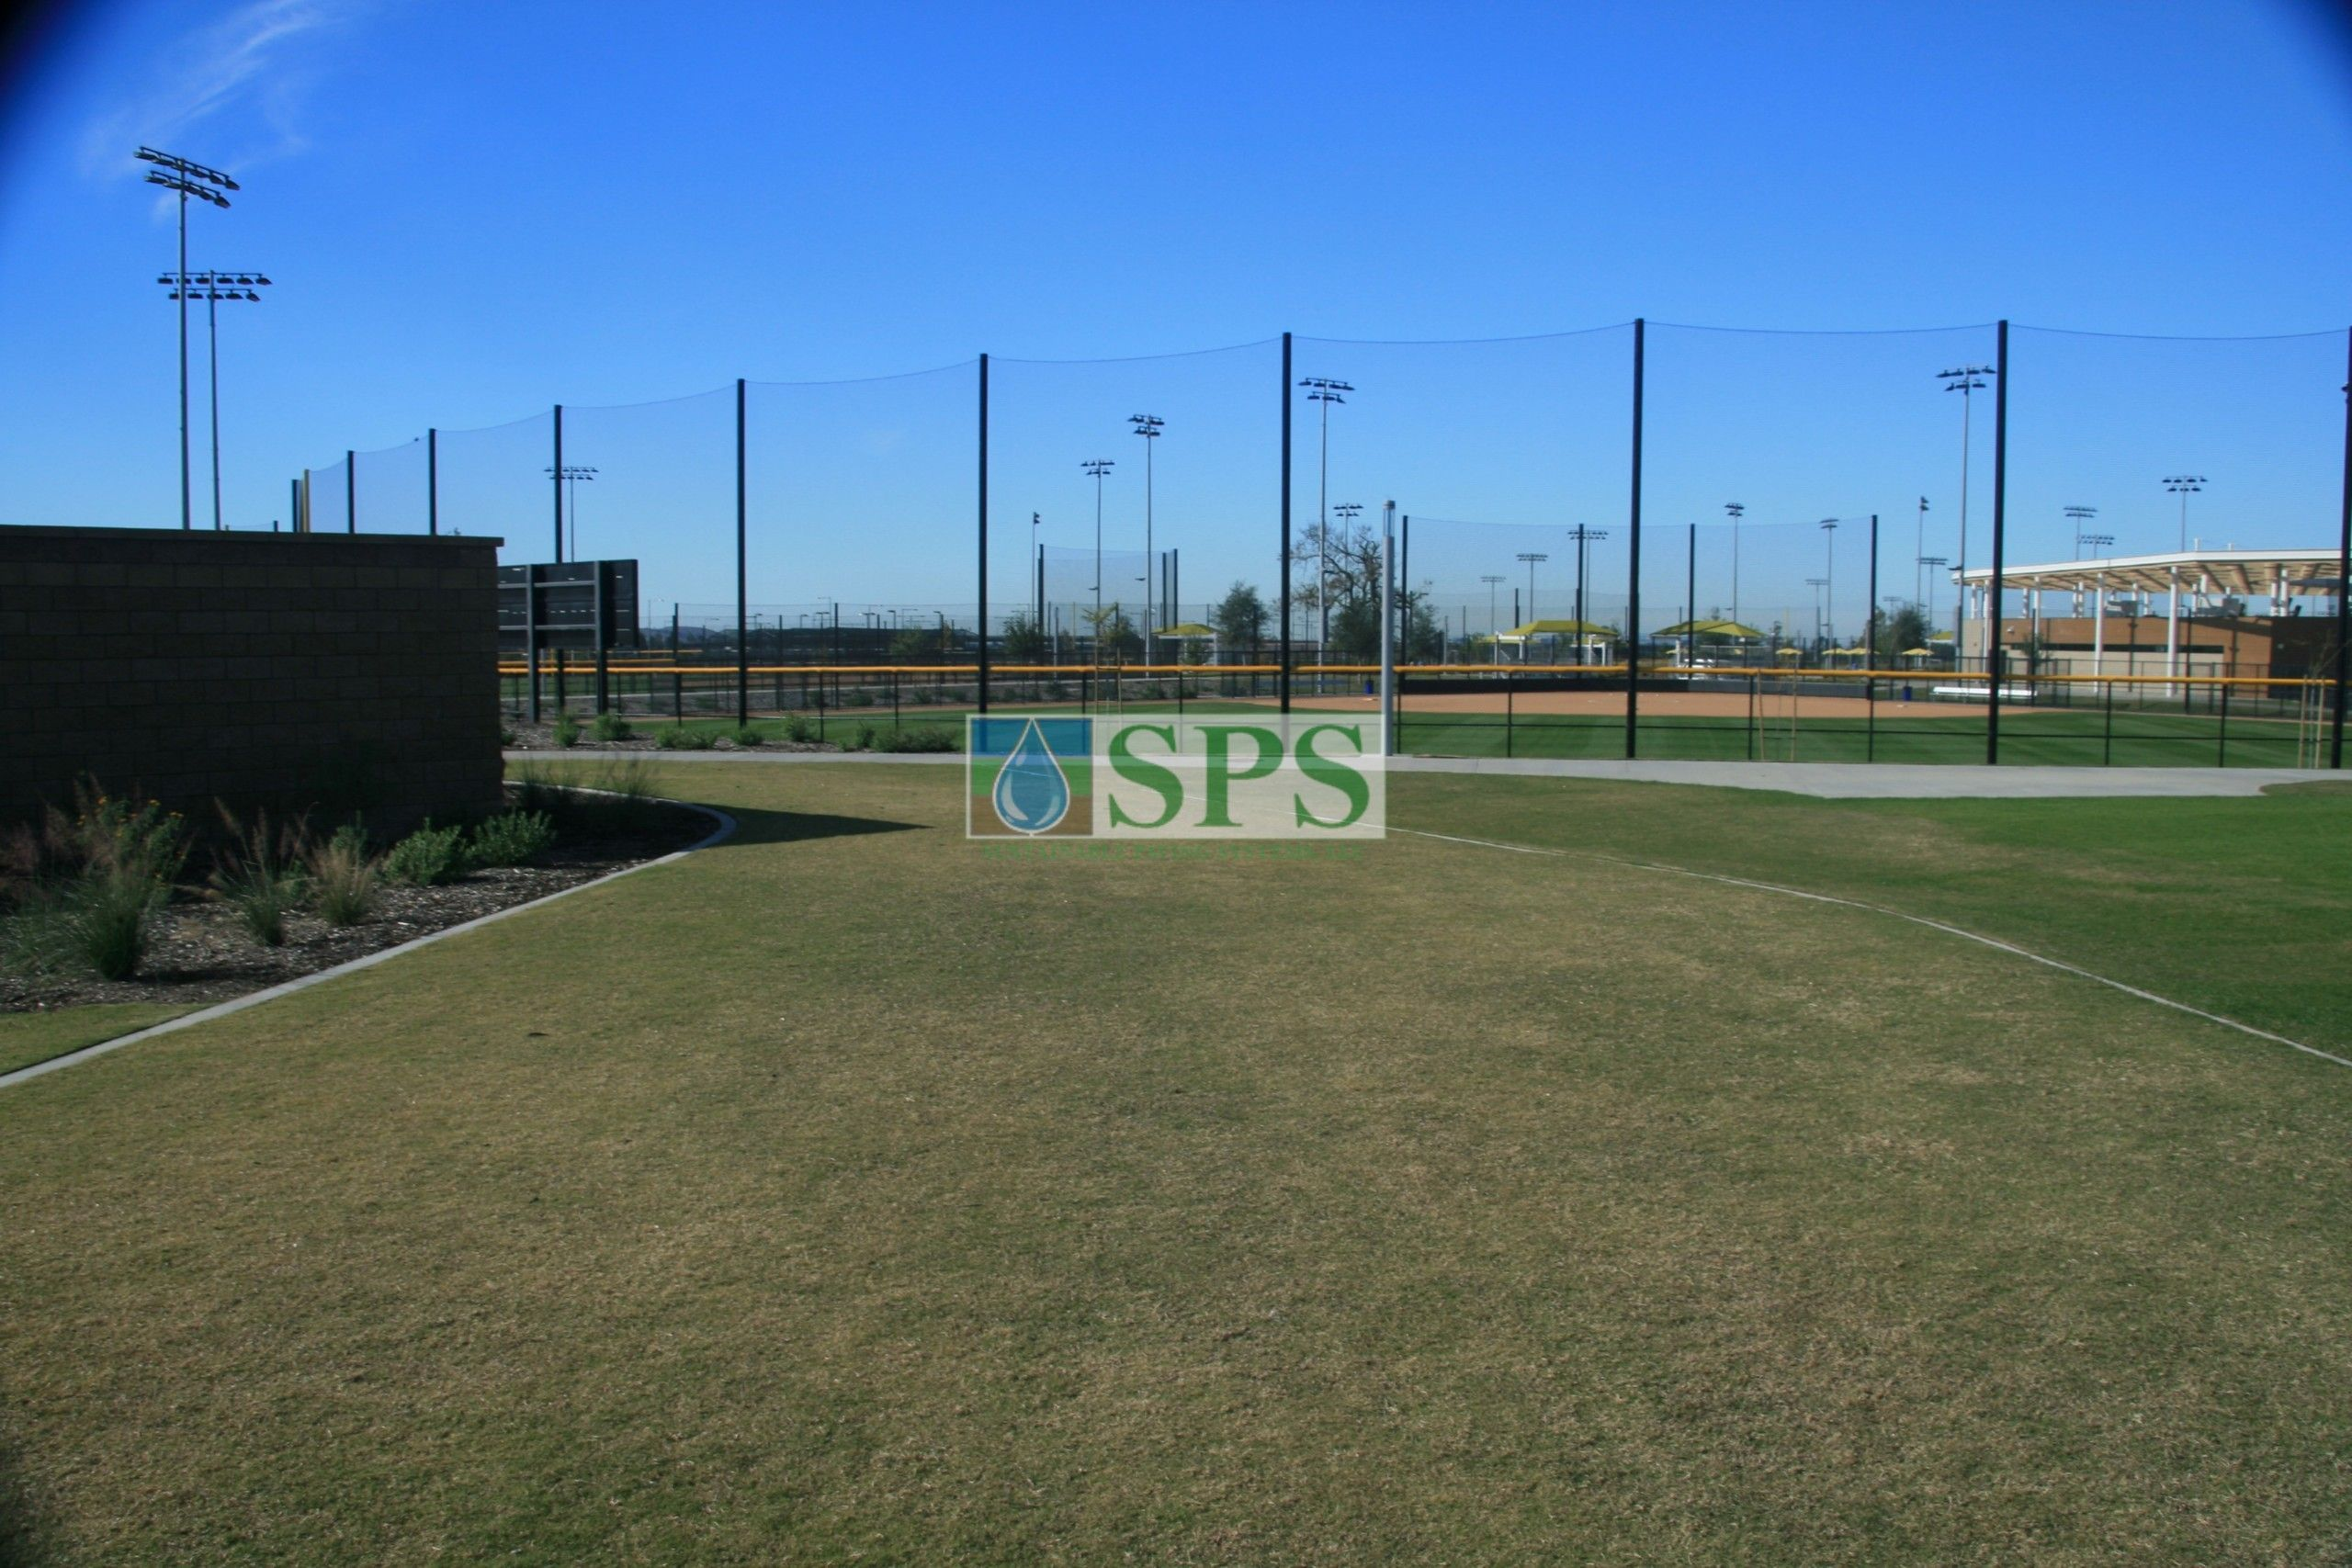 Roundabout shoulder created with Partially Concealed Grasscrete System at the Orange County Great Park in Irvine, CA.